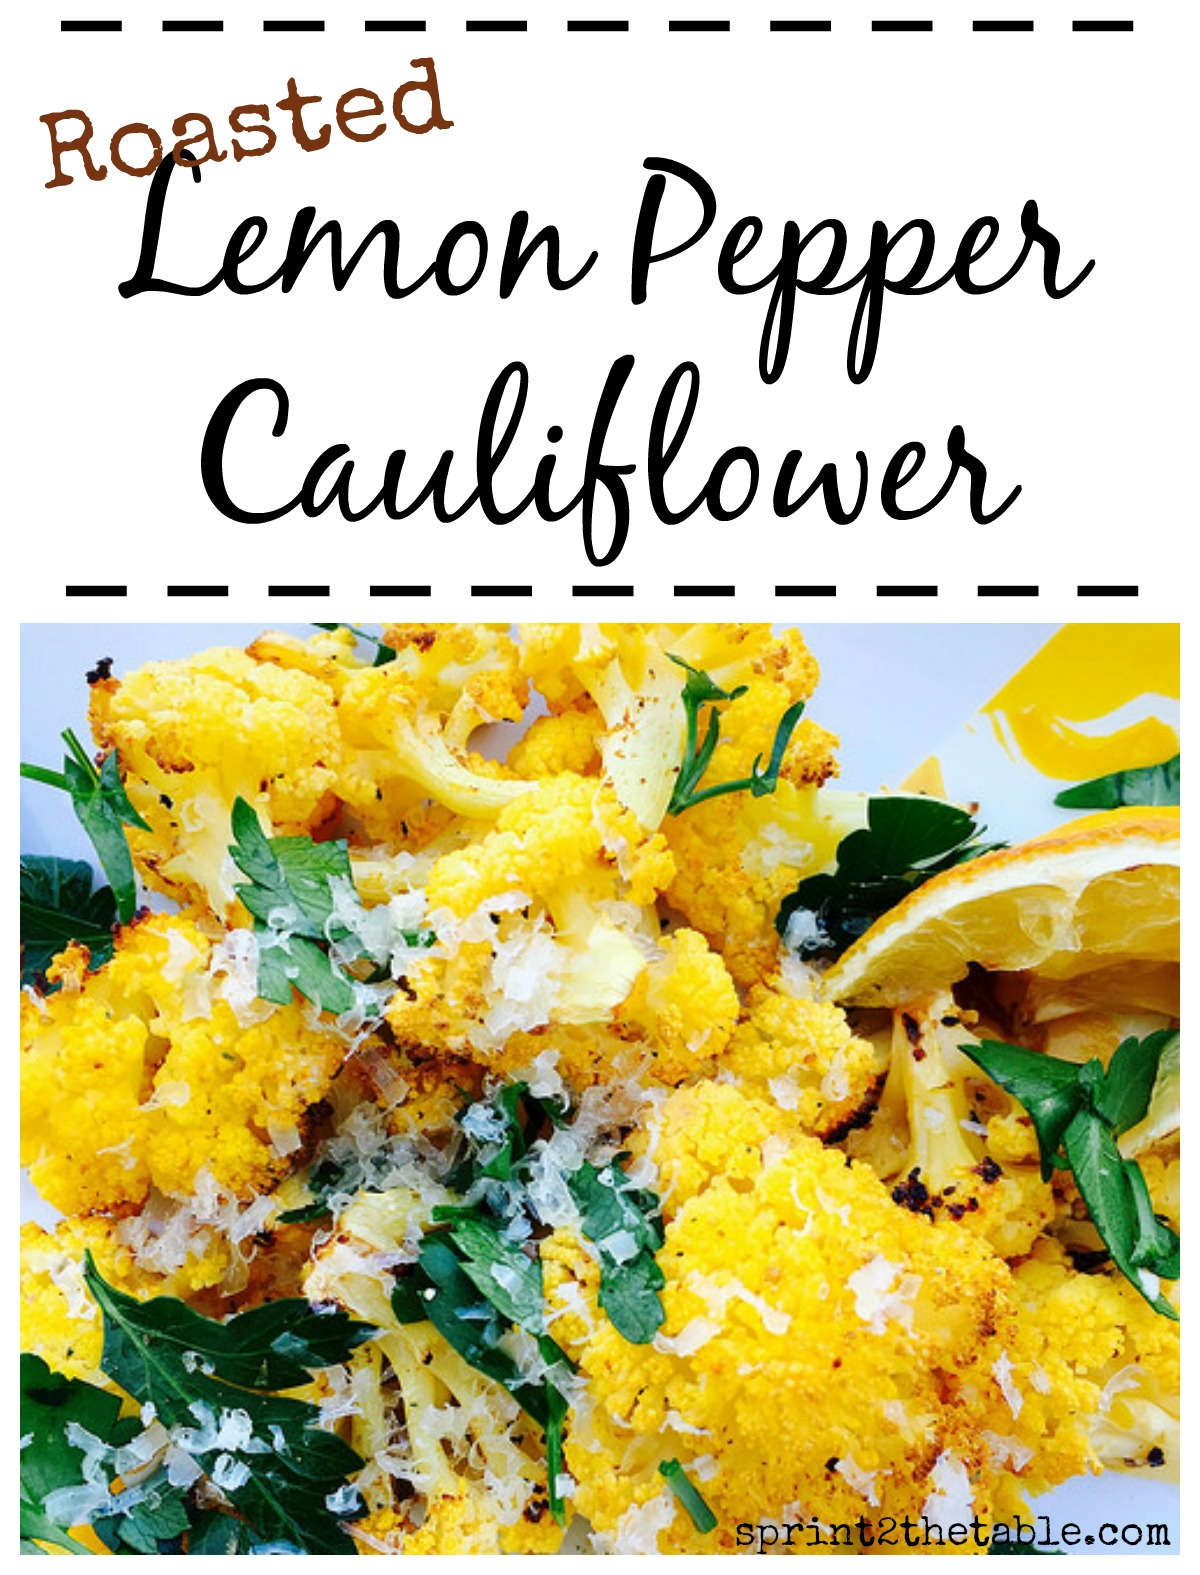 This roasted Lemon Pepper Cauliflower packs so much flavor that even the pickiest of eaters will clean their plate!